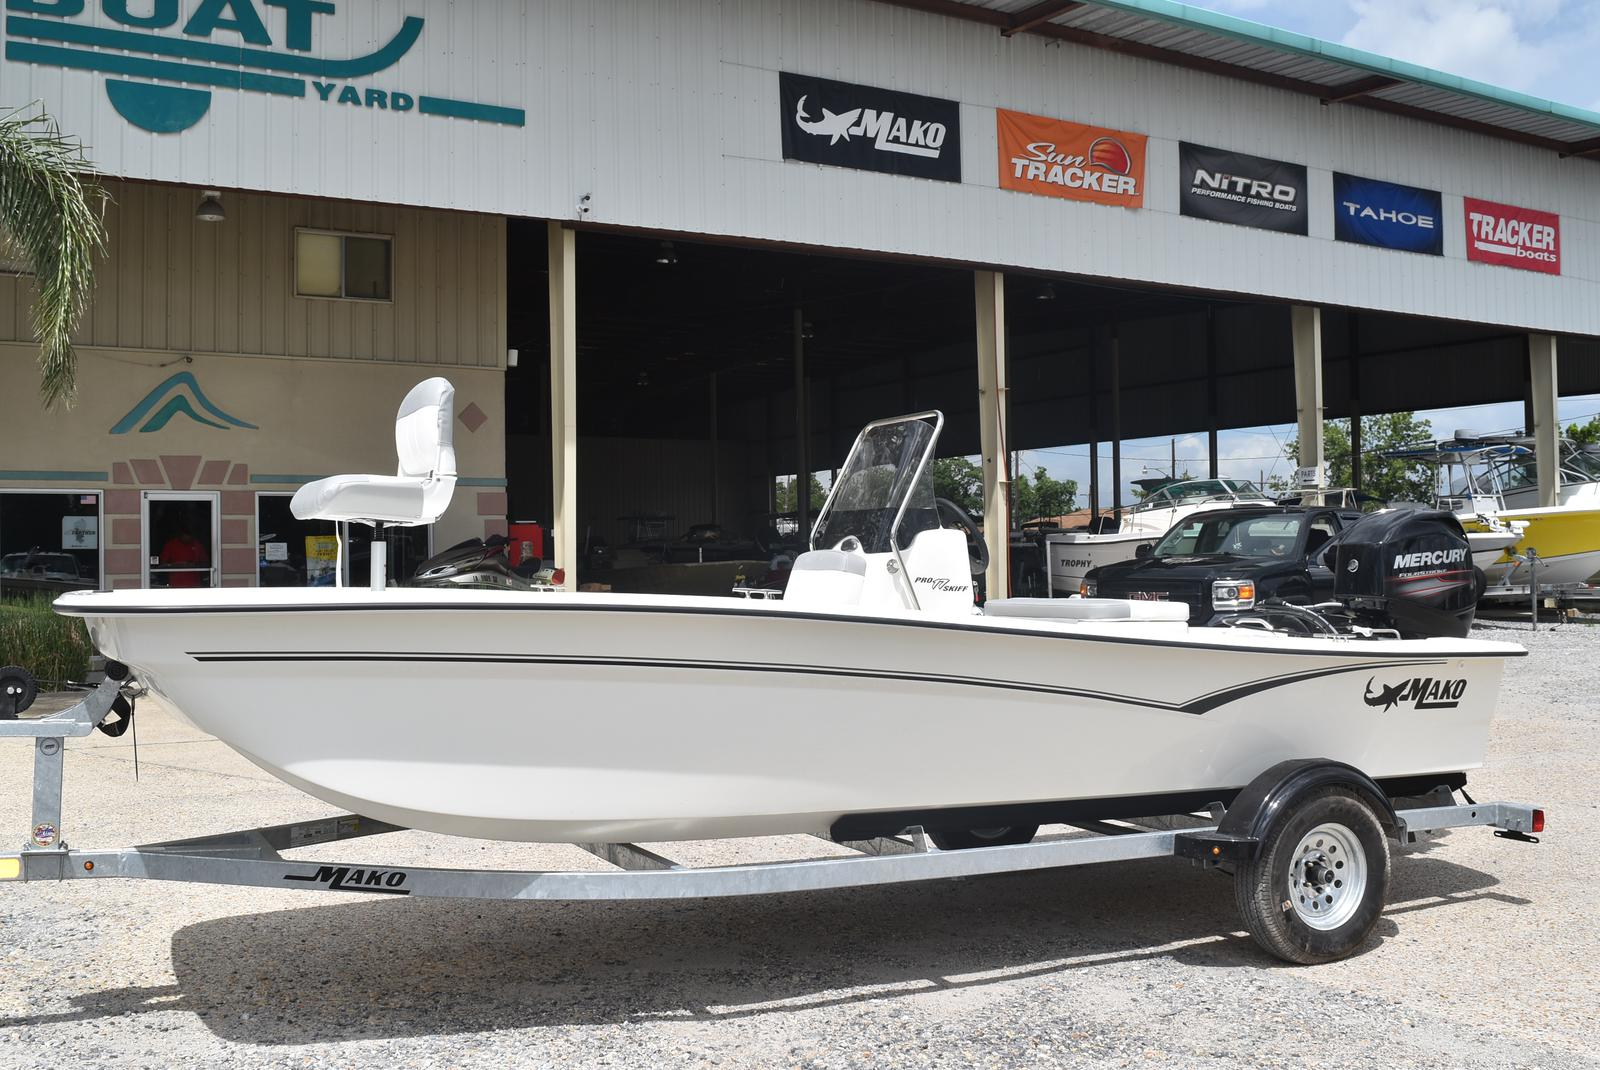 2020 Mako boat for sale, model of the boat is Pro Skiff 17, 75 ELPT & Image # 100 of 702